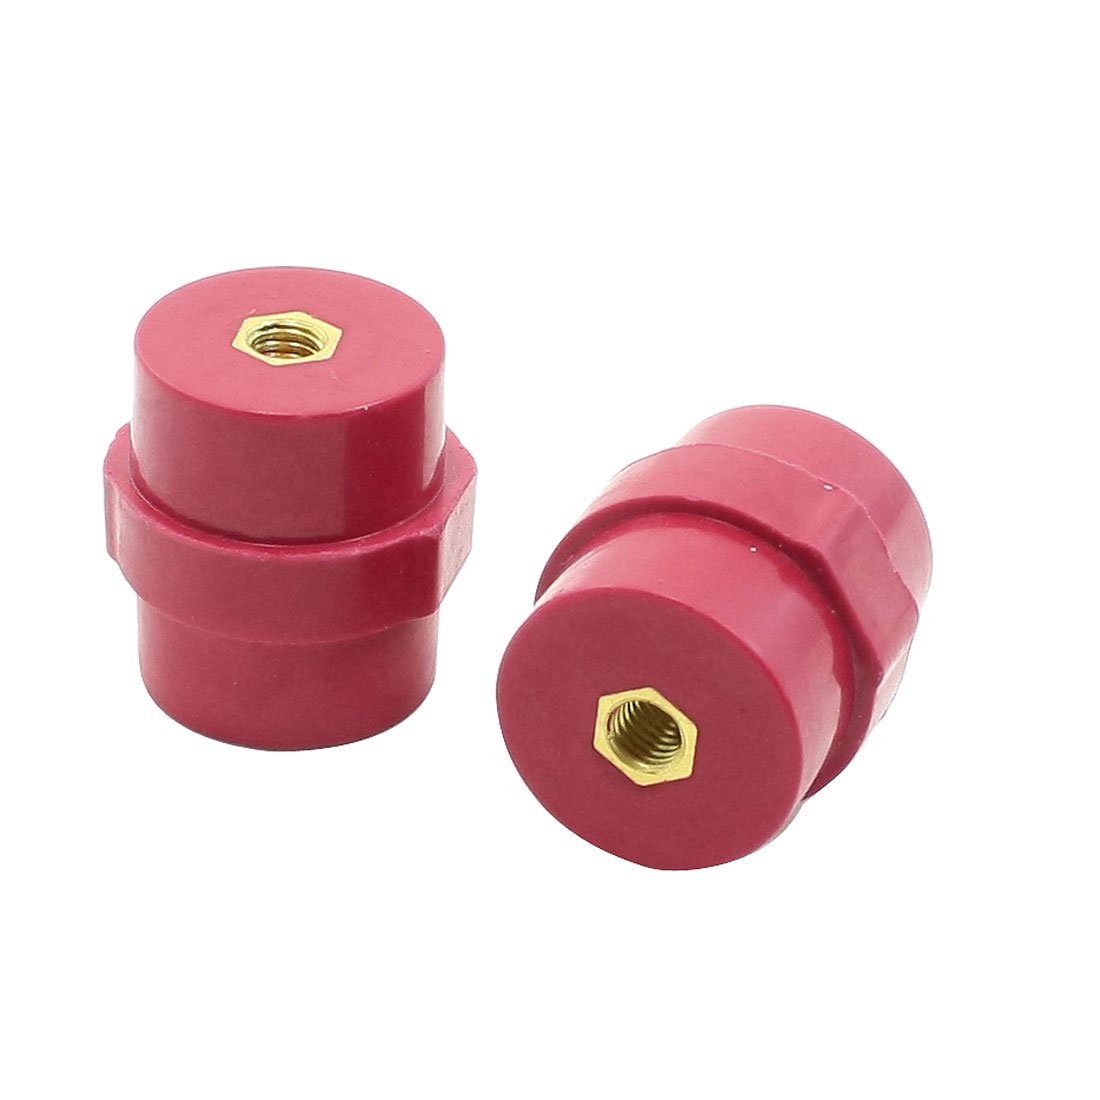 2 X SM30 6mm Bore 30mm Height Busbar Insulators Supports Separators